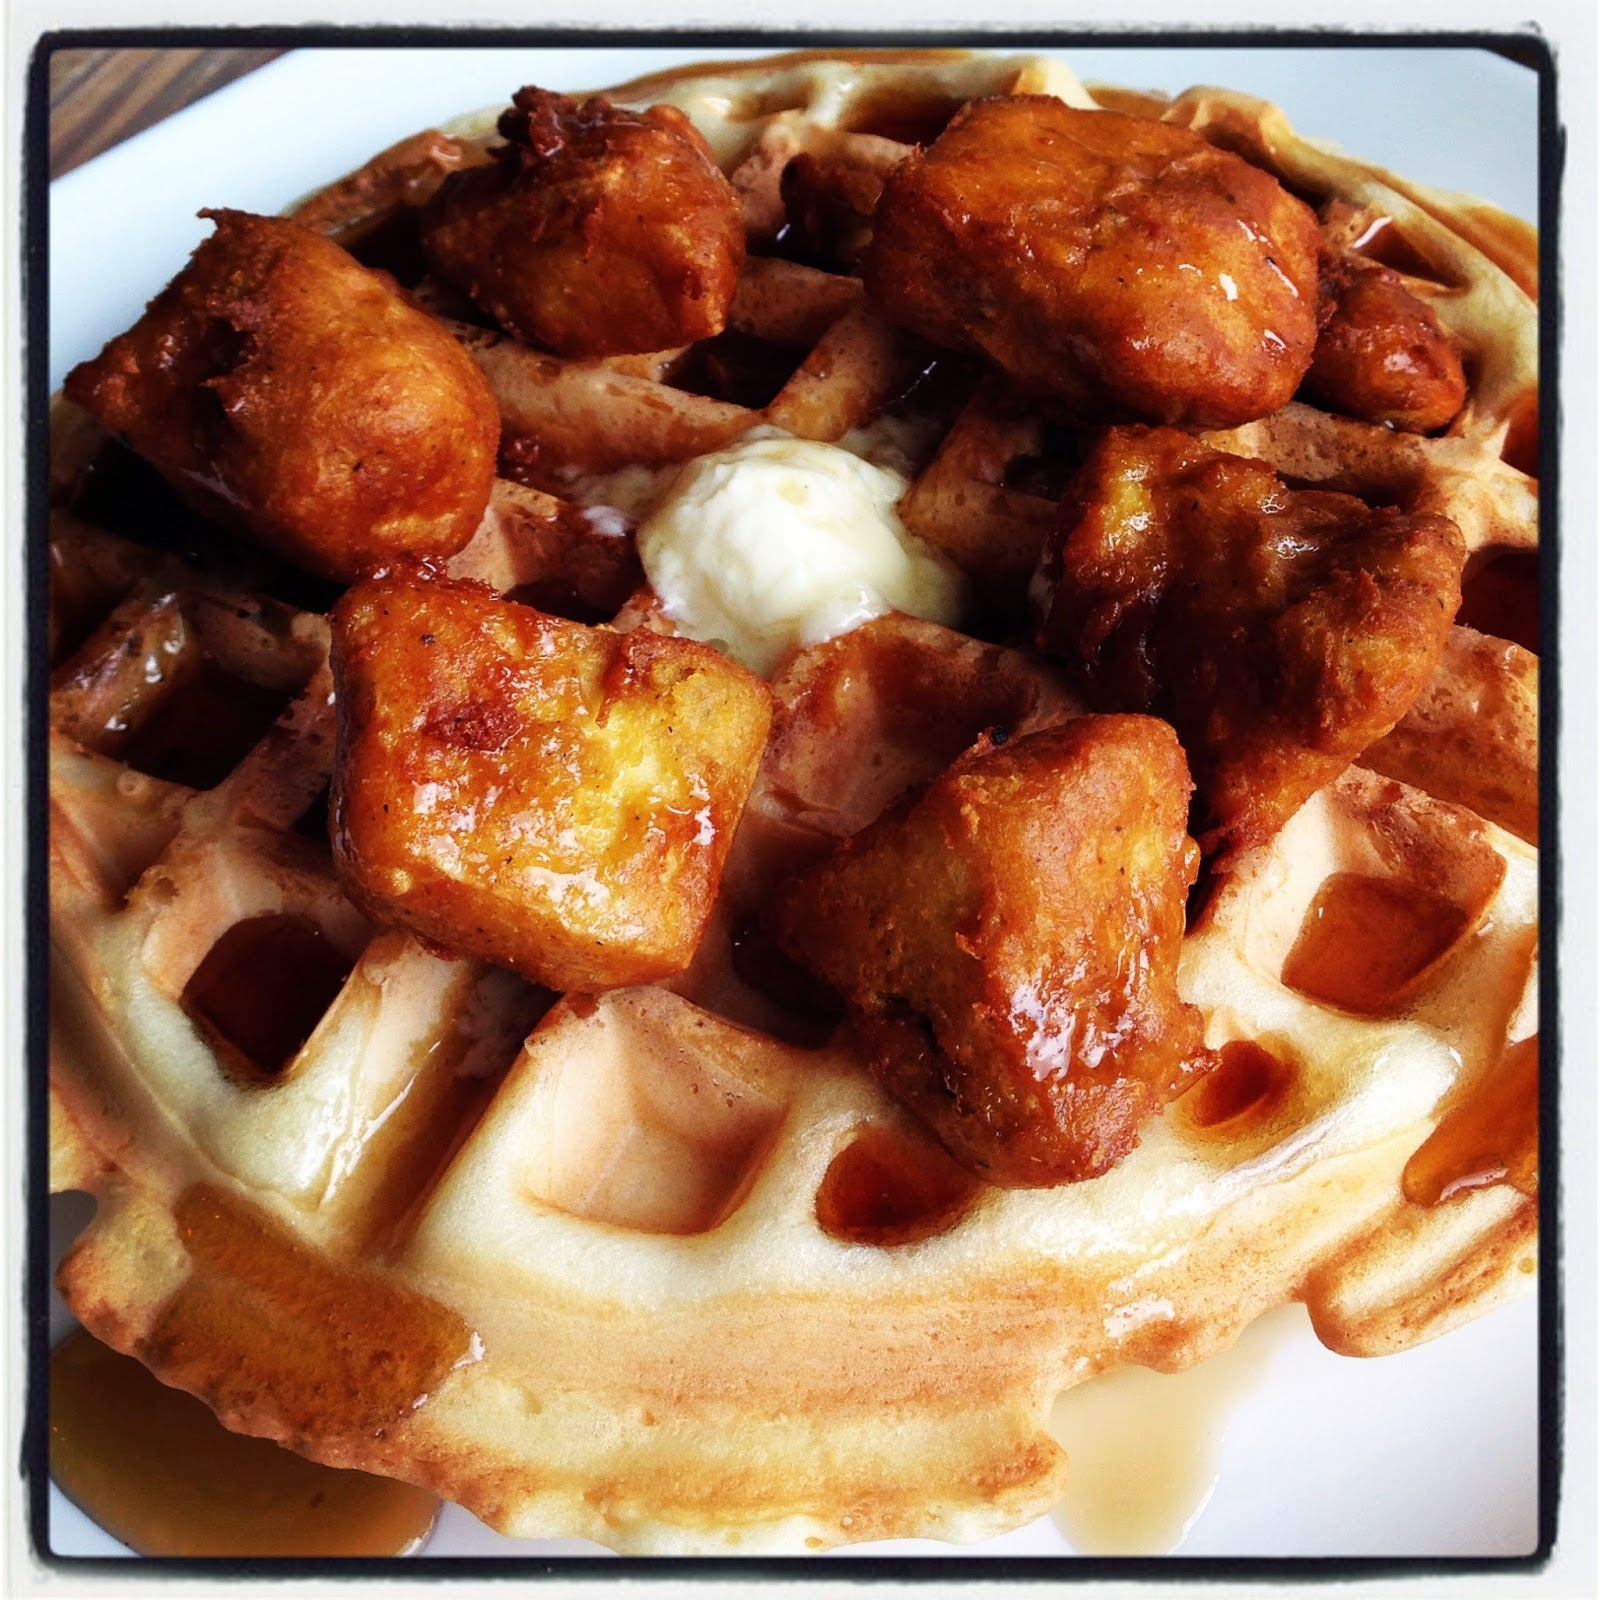 (Vegan) (gluten-free) waffle and (tofu) nuggets at Seed in New Orleans